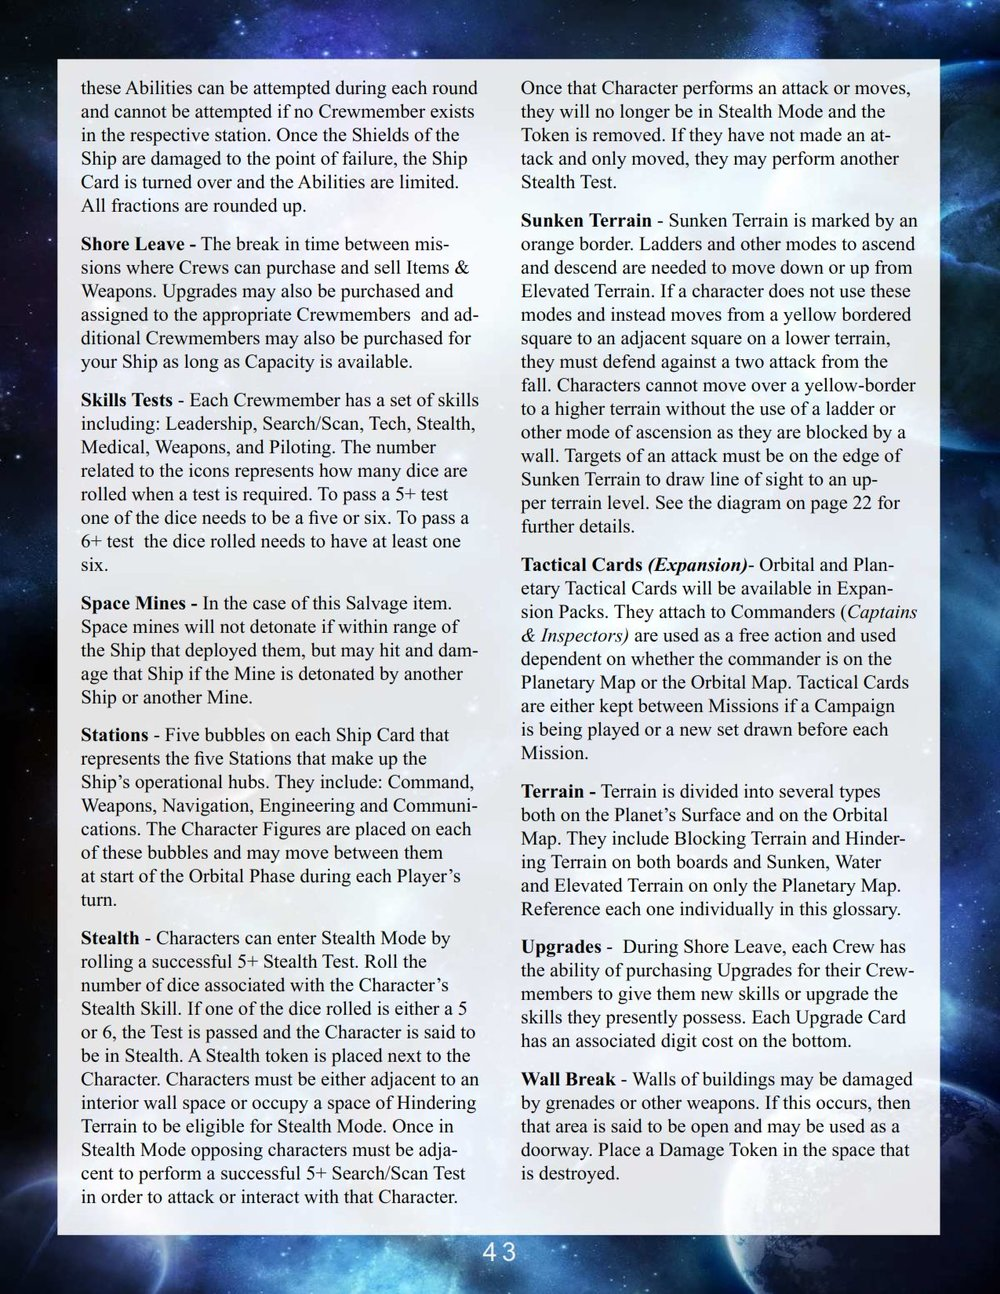 Renegades_Rule_Book_044.jpg